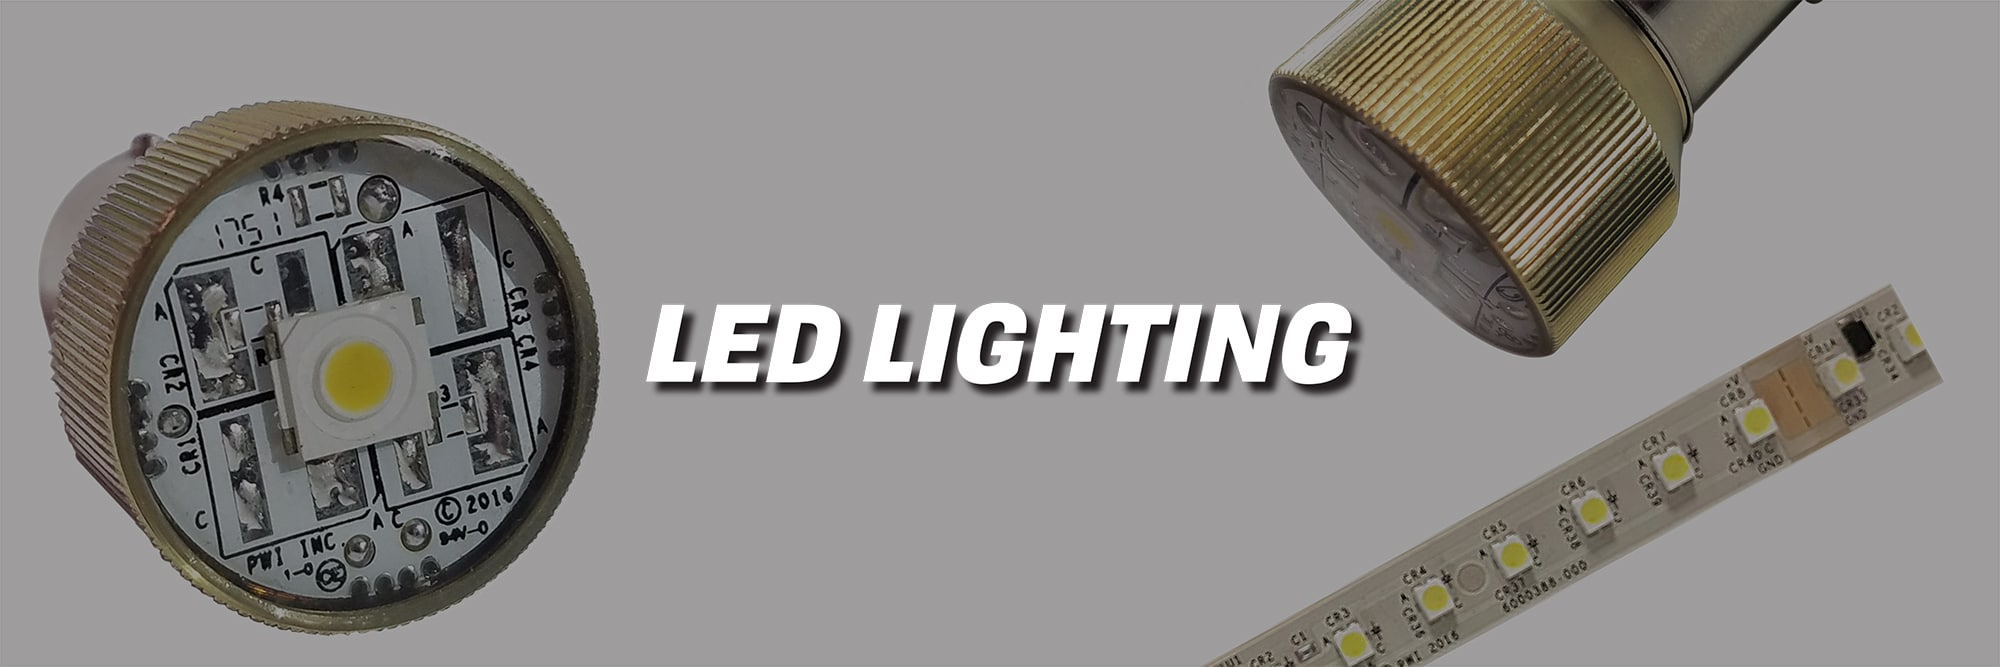 LED Lighting | PWI, Inc